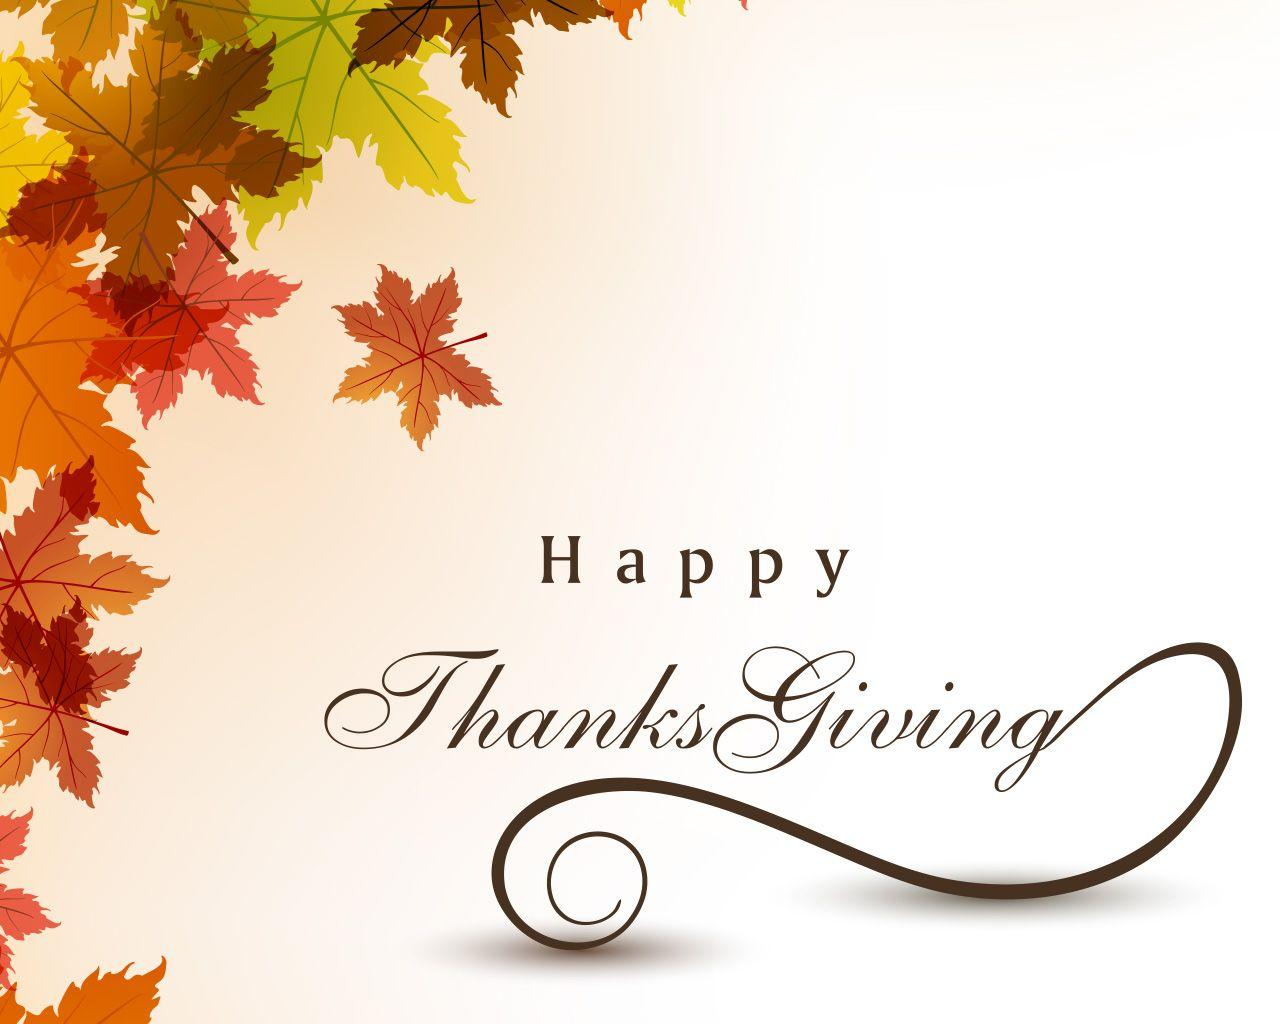 Thanksgiving Day Graphic Message for Digital Signage Communications